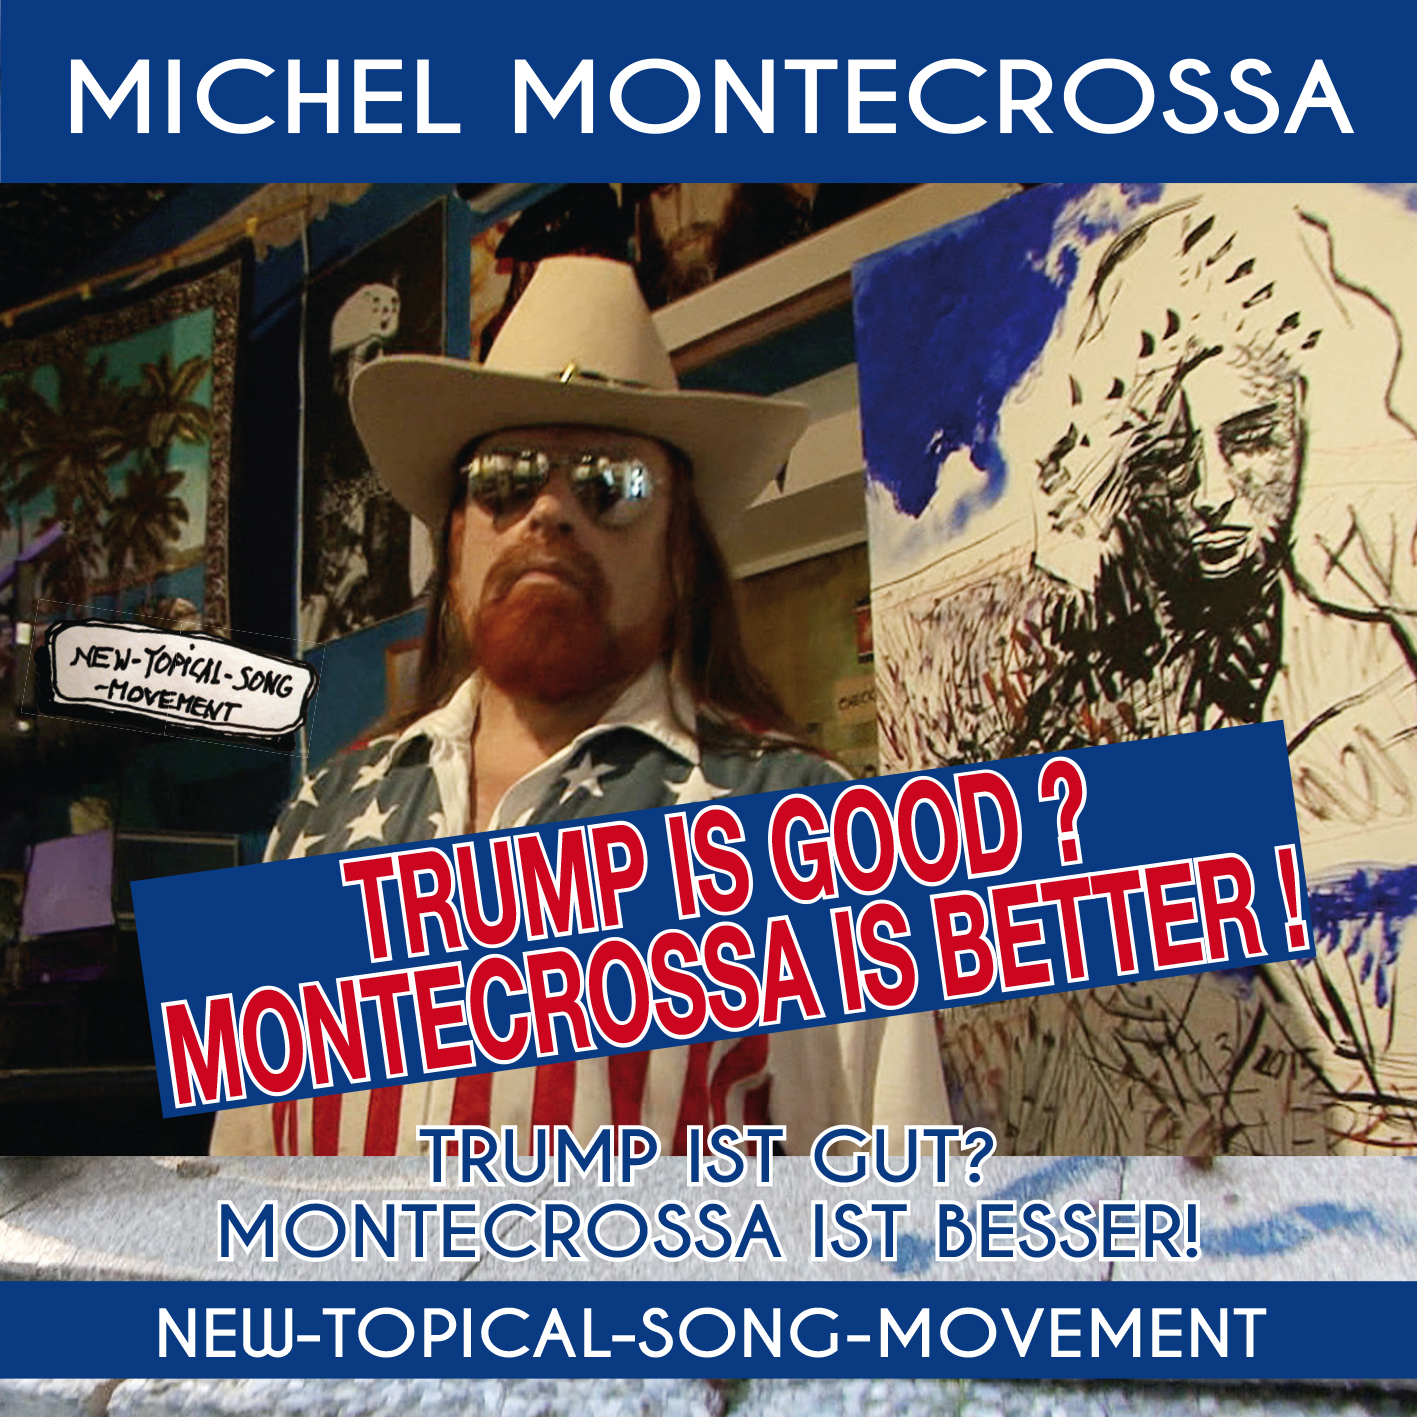 Trump Is Good? Montecrossa Is Better! - Trump Ist Gut? Montecrossa Ist Besser!